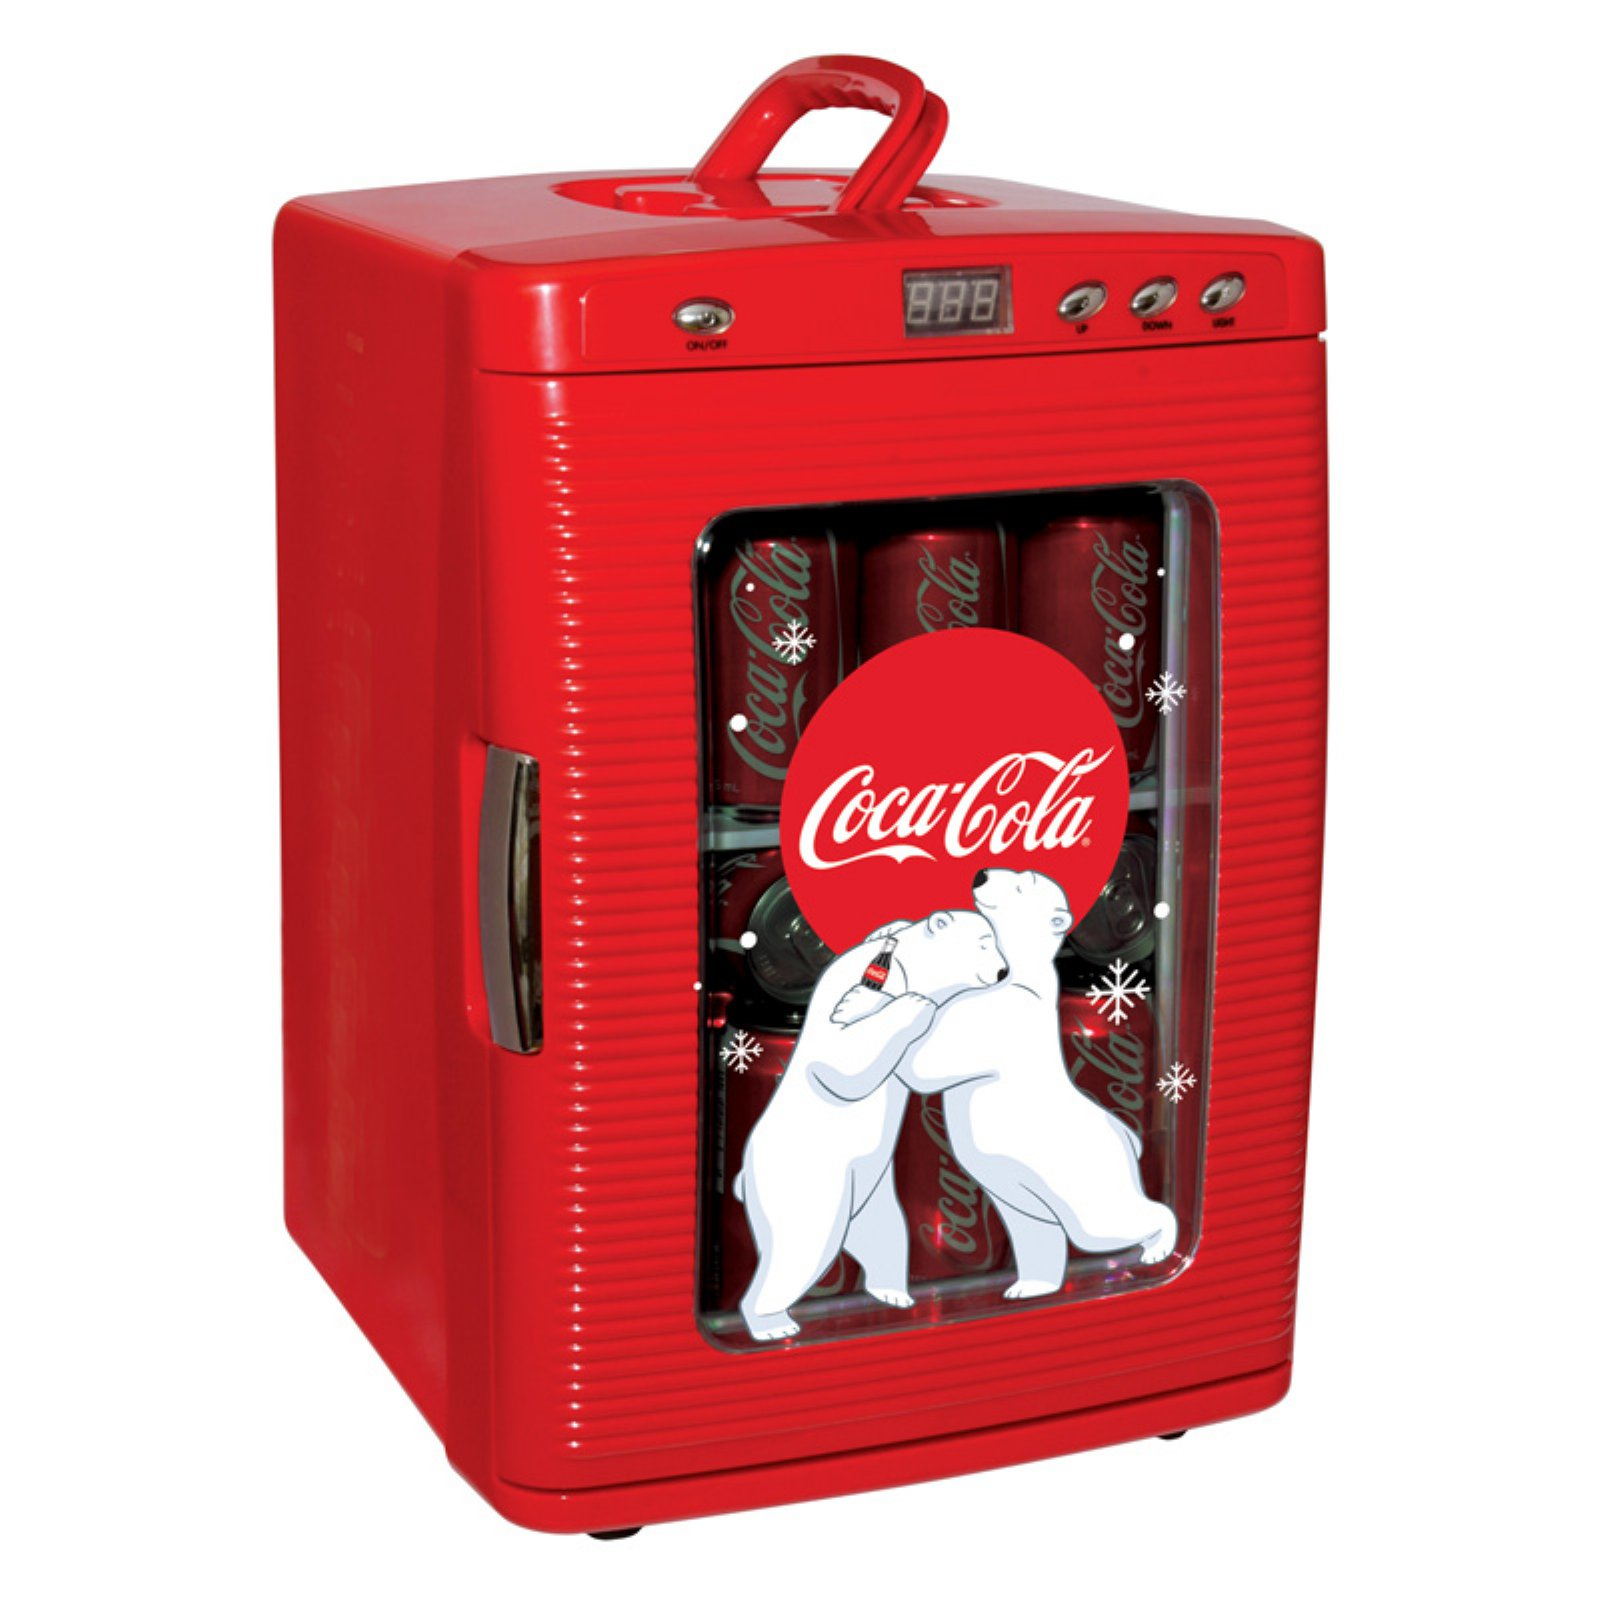 Koolatron Coca-Cola 28 can Compact Countertop Electric Beverage Cooler KWC25, Red